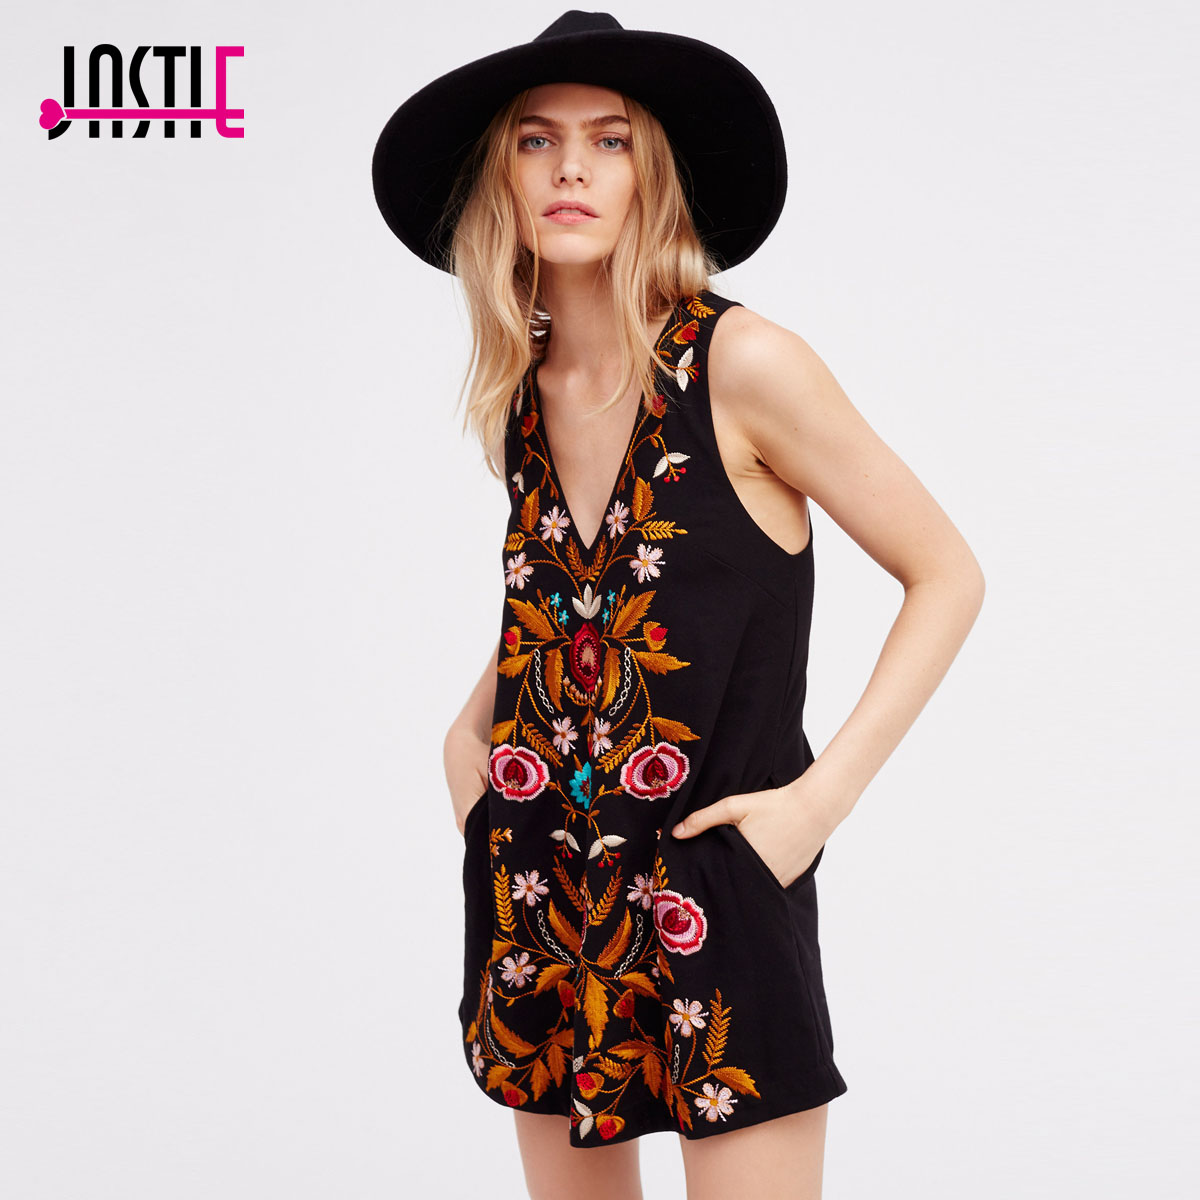 Jastie Folk Song Retro Mini Dress Gorgeous Garden Embroidery Women Dress Side Pockets V-Neckline Sexy Beach Summer Vestidos